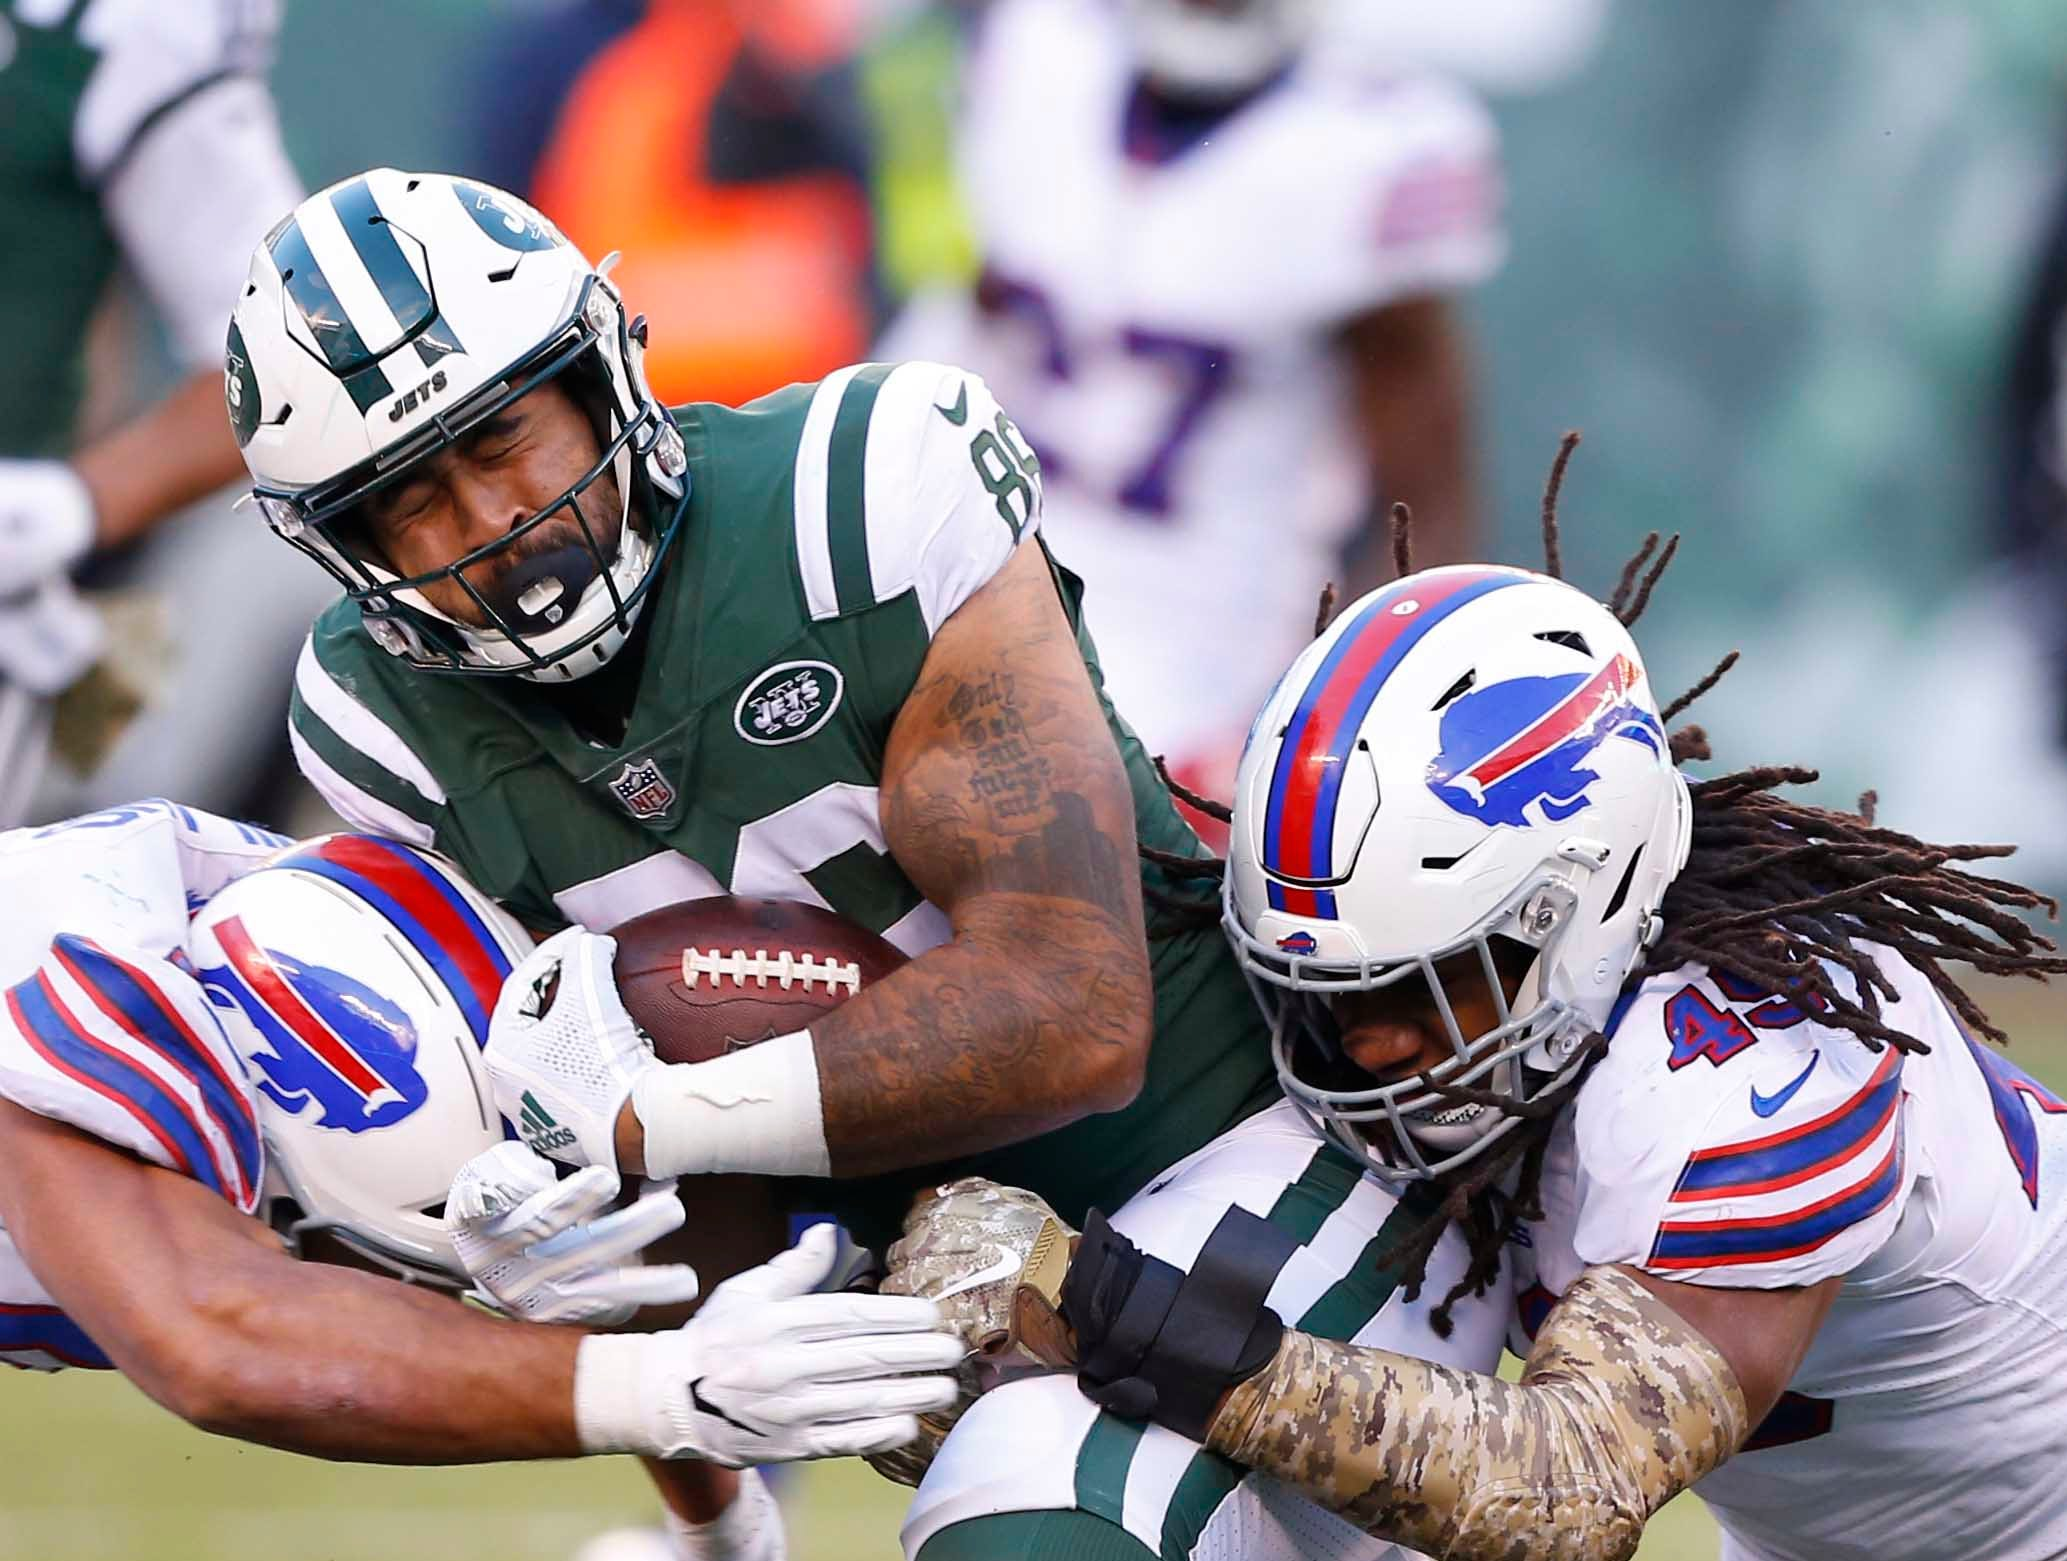 Nov 11, 2018; East Rutherford, NJ, USA; New York Jets tight end Jordan Leggett (86) is tackled by Buffalo Bills outside linebacker Matt Milano (58) and middle linebacker Tremaine Edmunds (49) during the second half at MetLife Stadium. Mandatory Credit: Noah K. Murray-USA TODAY Sports